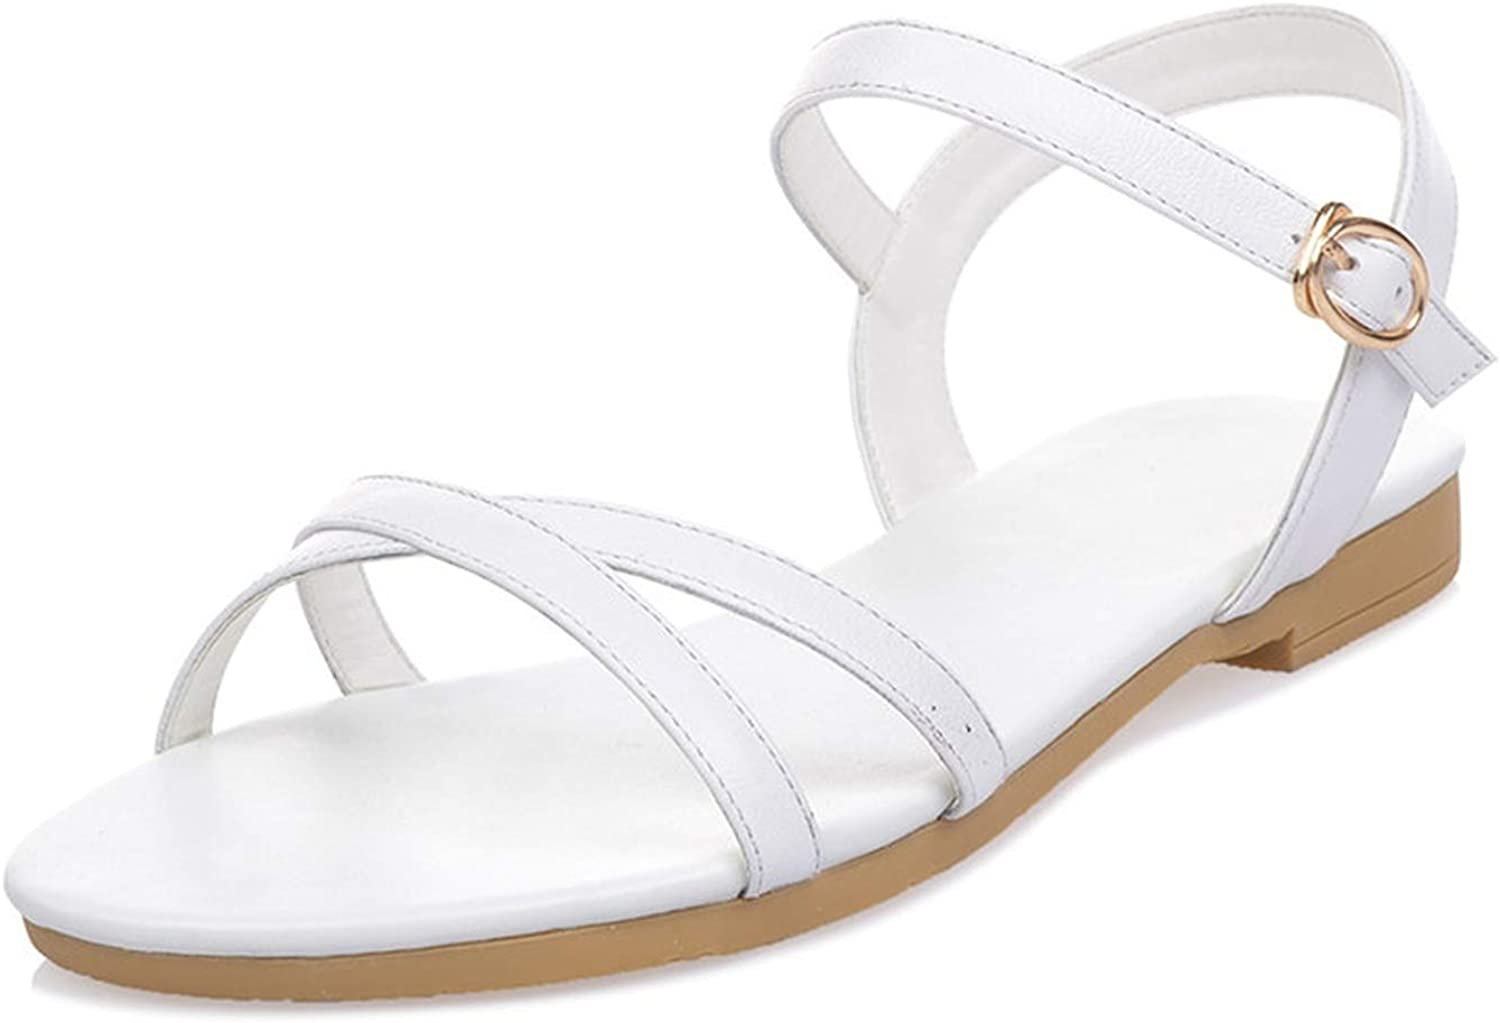 Genuine Leather Women Sandals Solid colors Buckle Flat Summer Sandals Simple Lady shoes